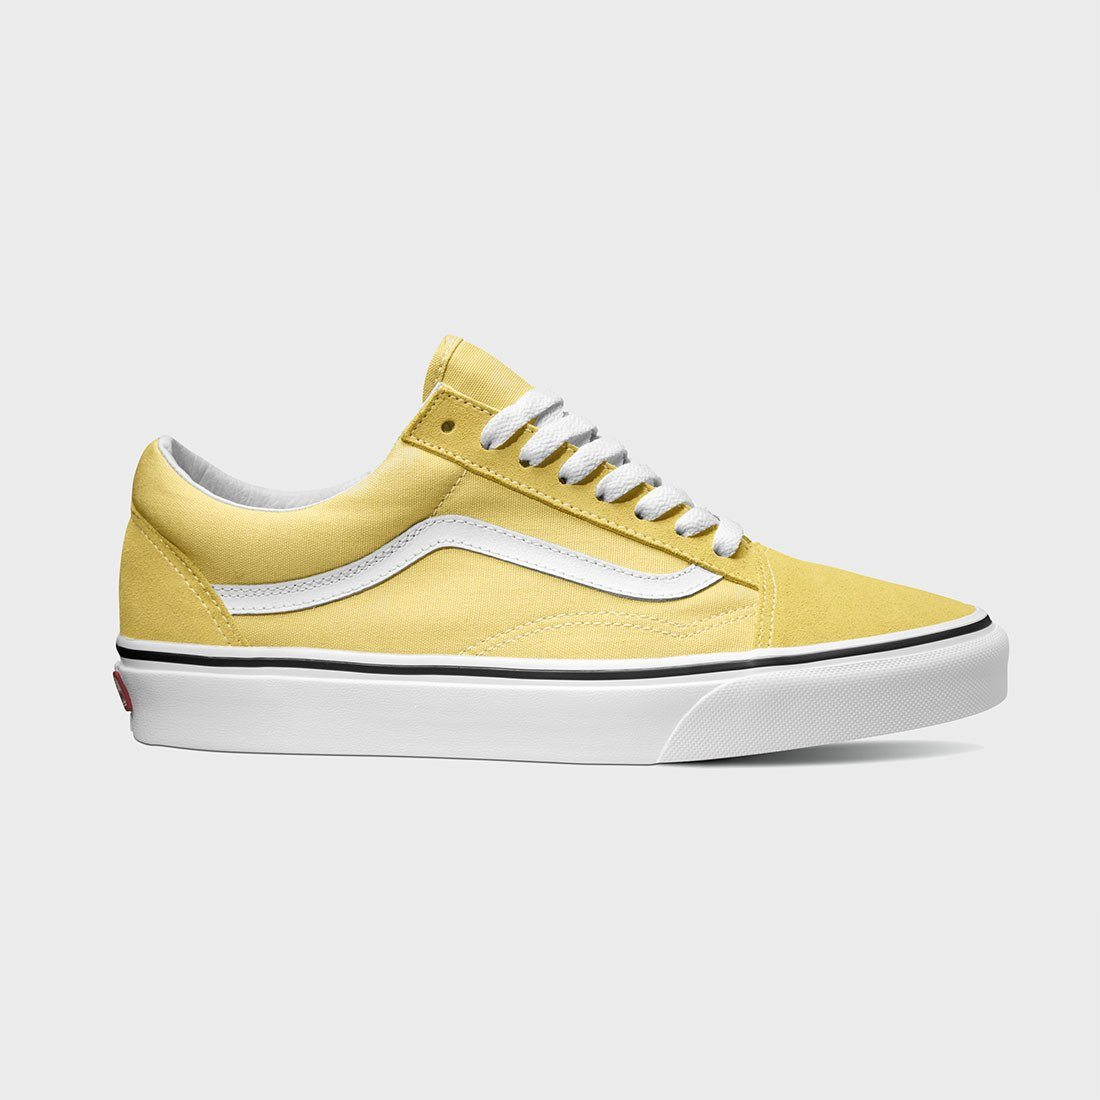 Vans Old Skool Dusky Citron Dusky Yellow / True White